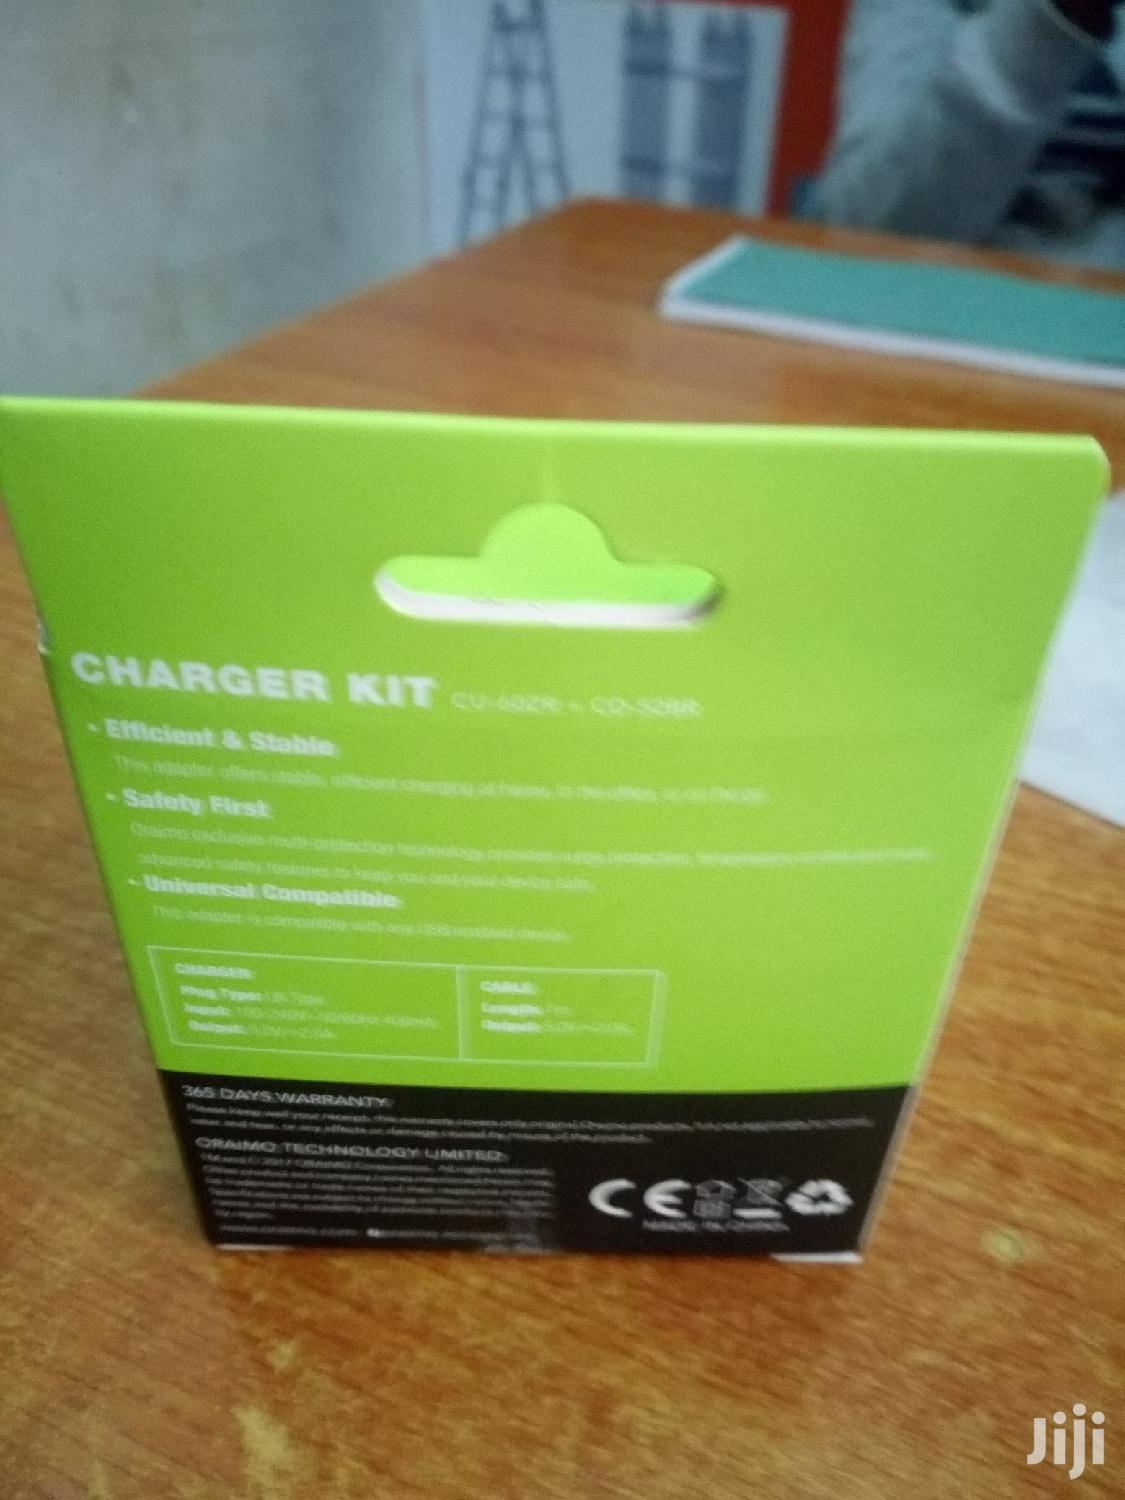 Oraimo Charger   Accessories for Mobile Phones & Tablets for sale in Nairobi Central, Nairobi, Kenya